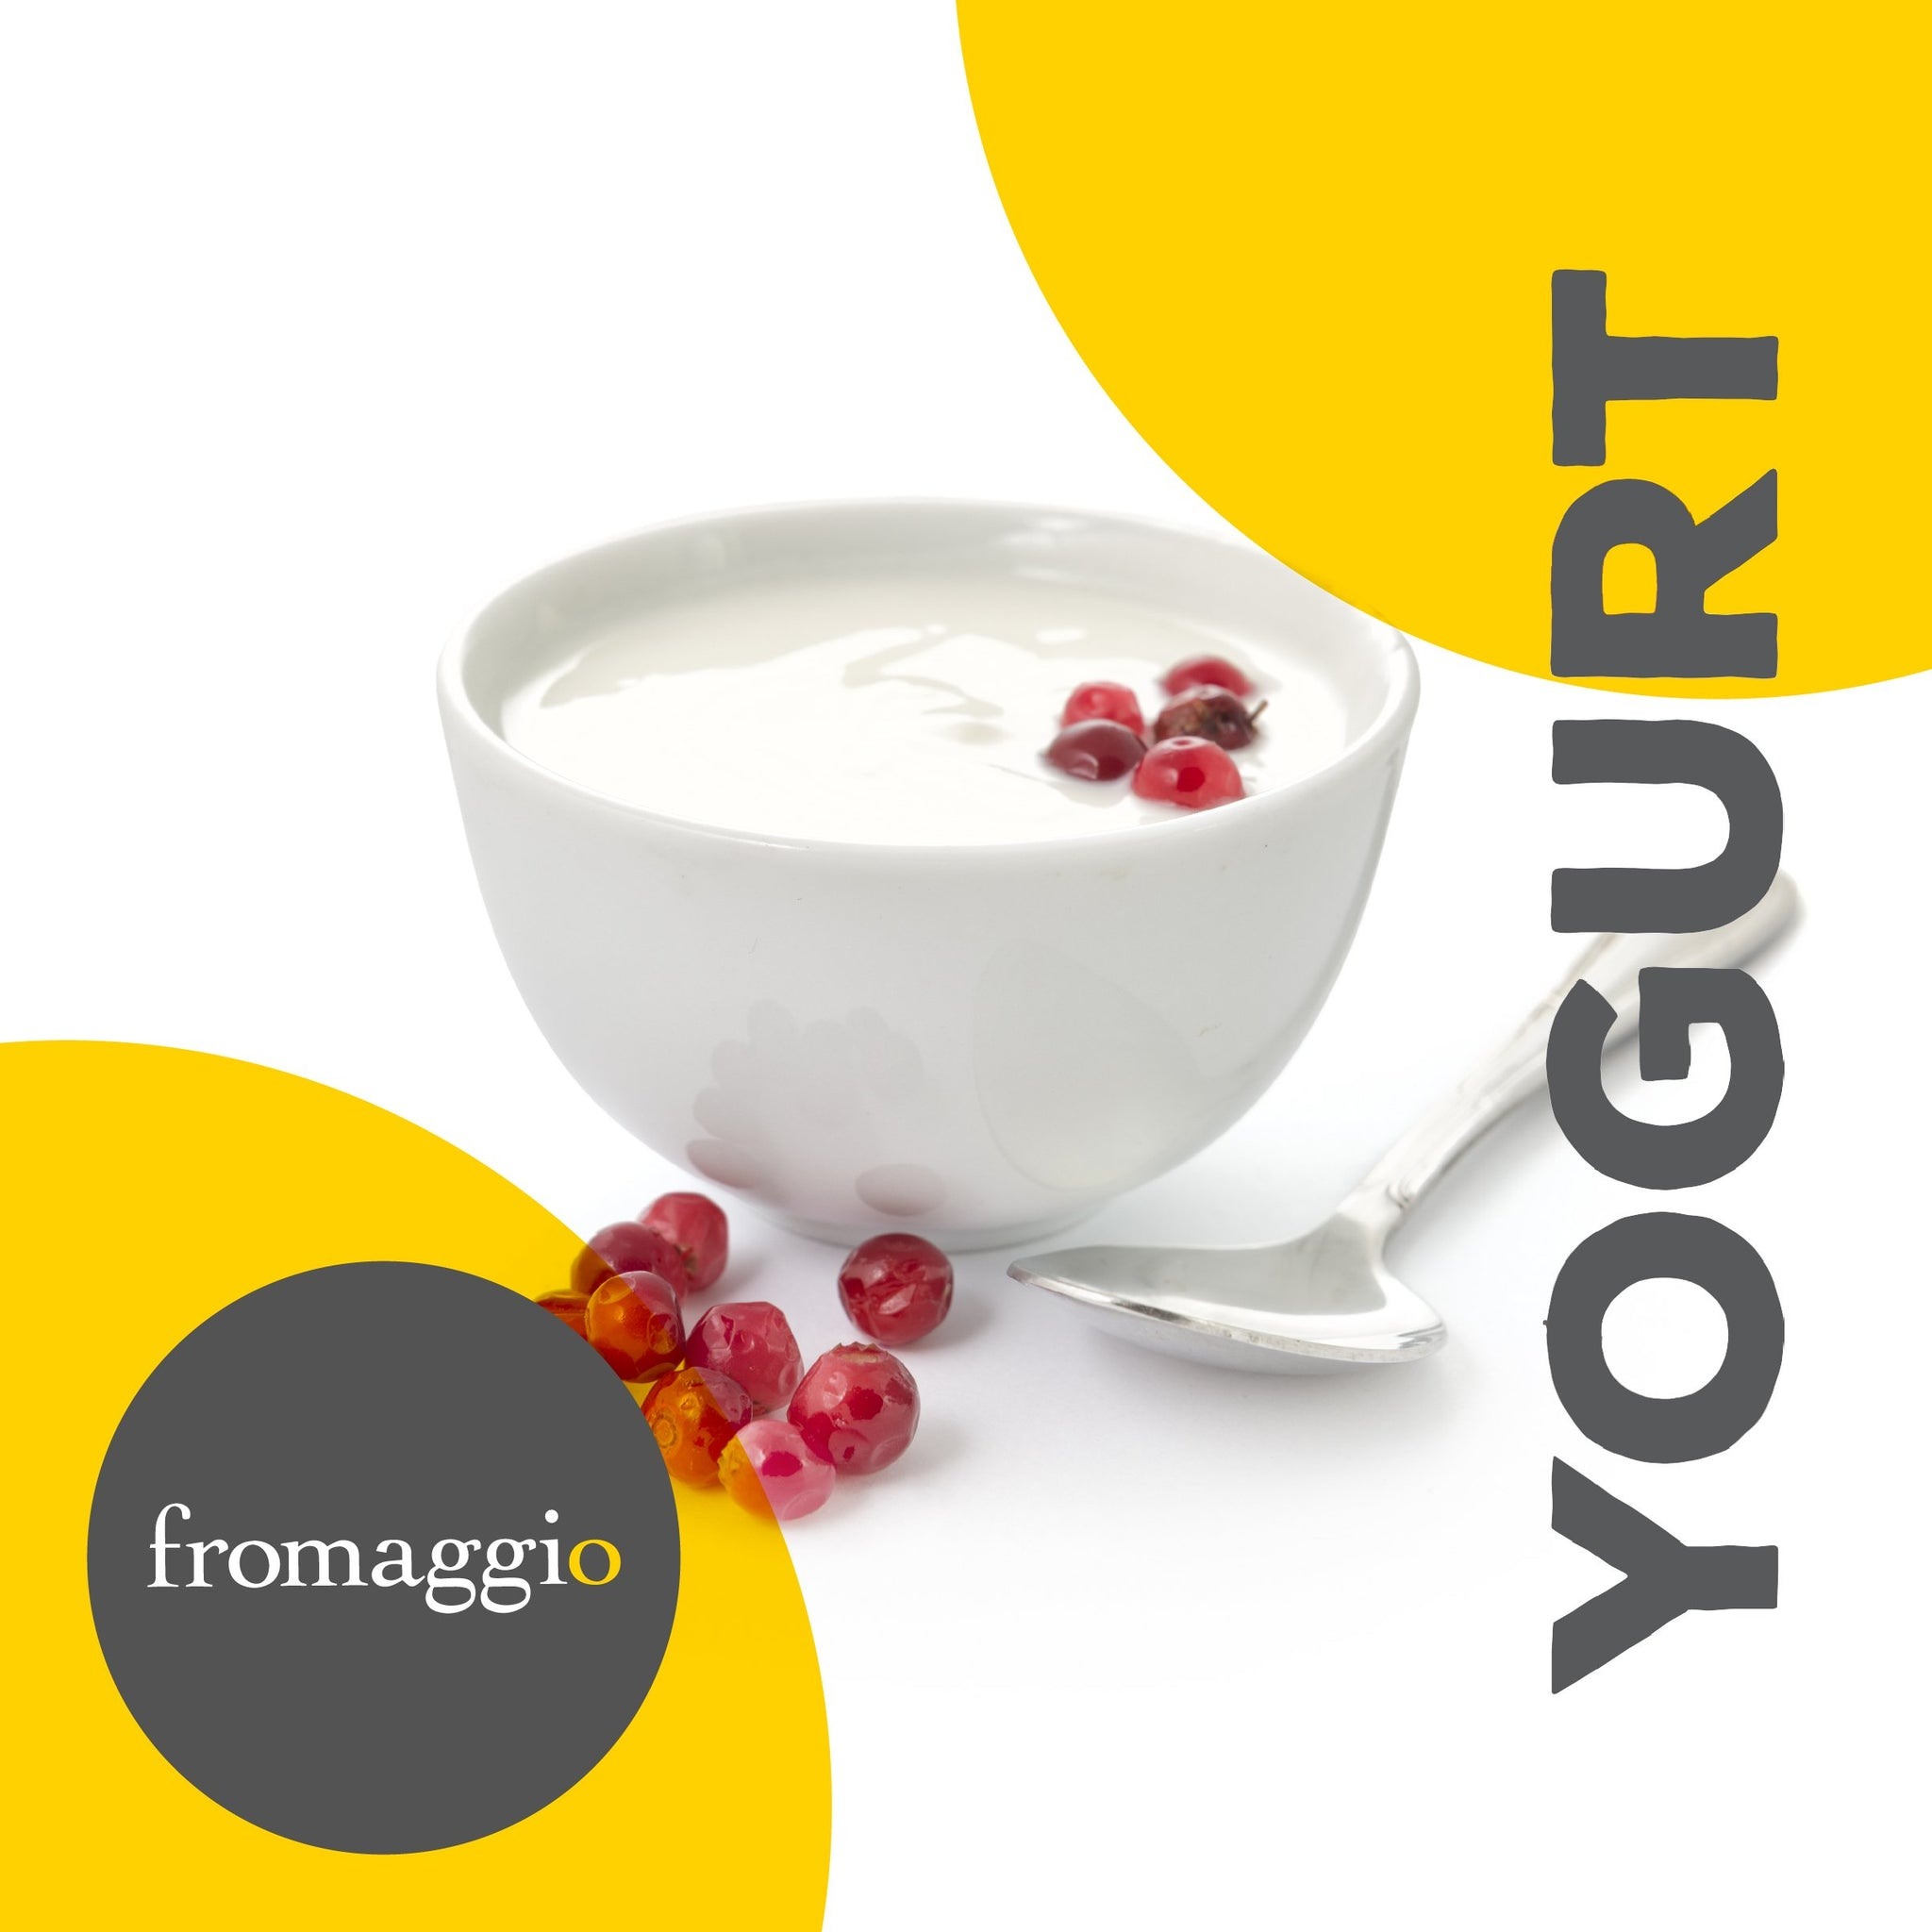 Yogurt Culture - fromaggio